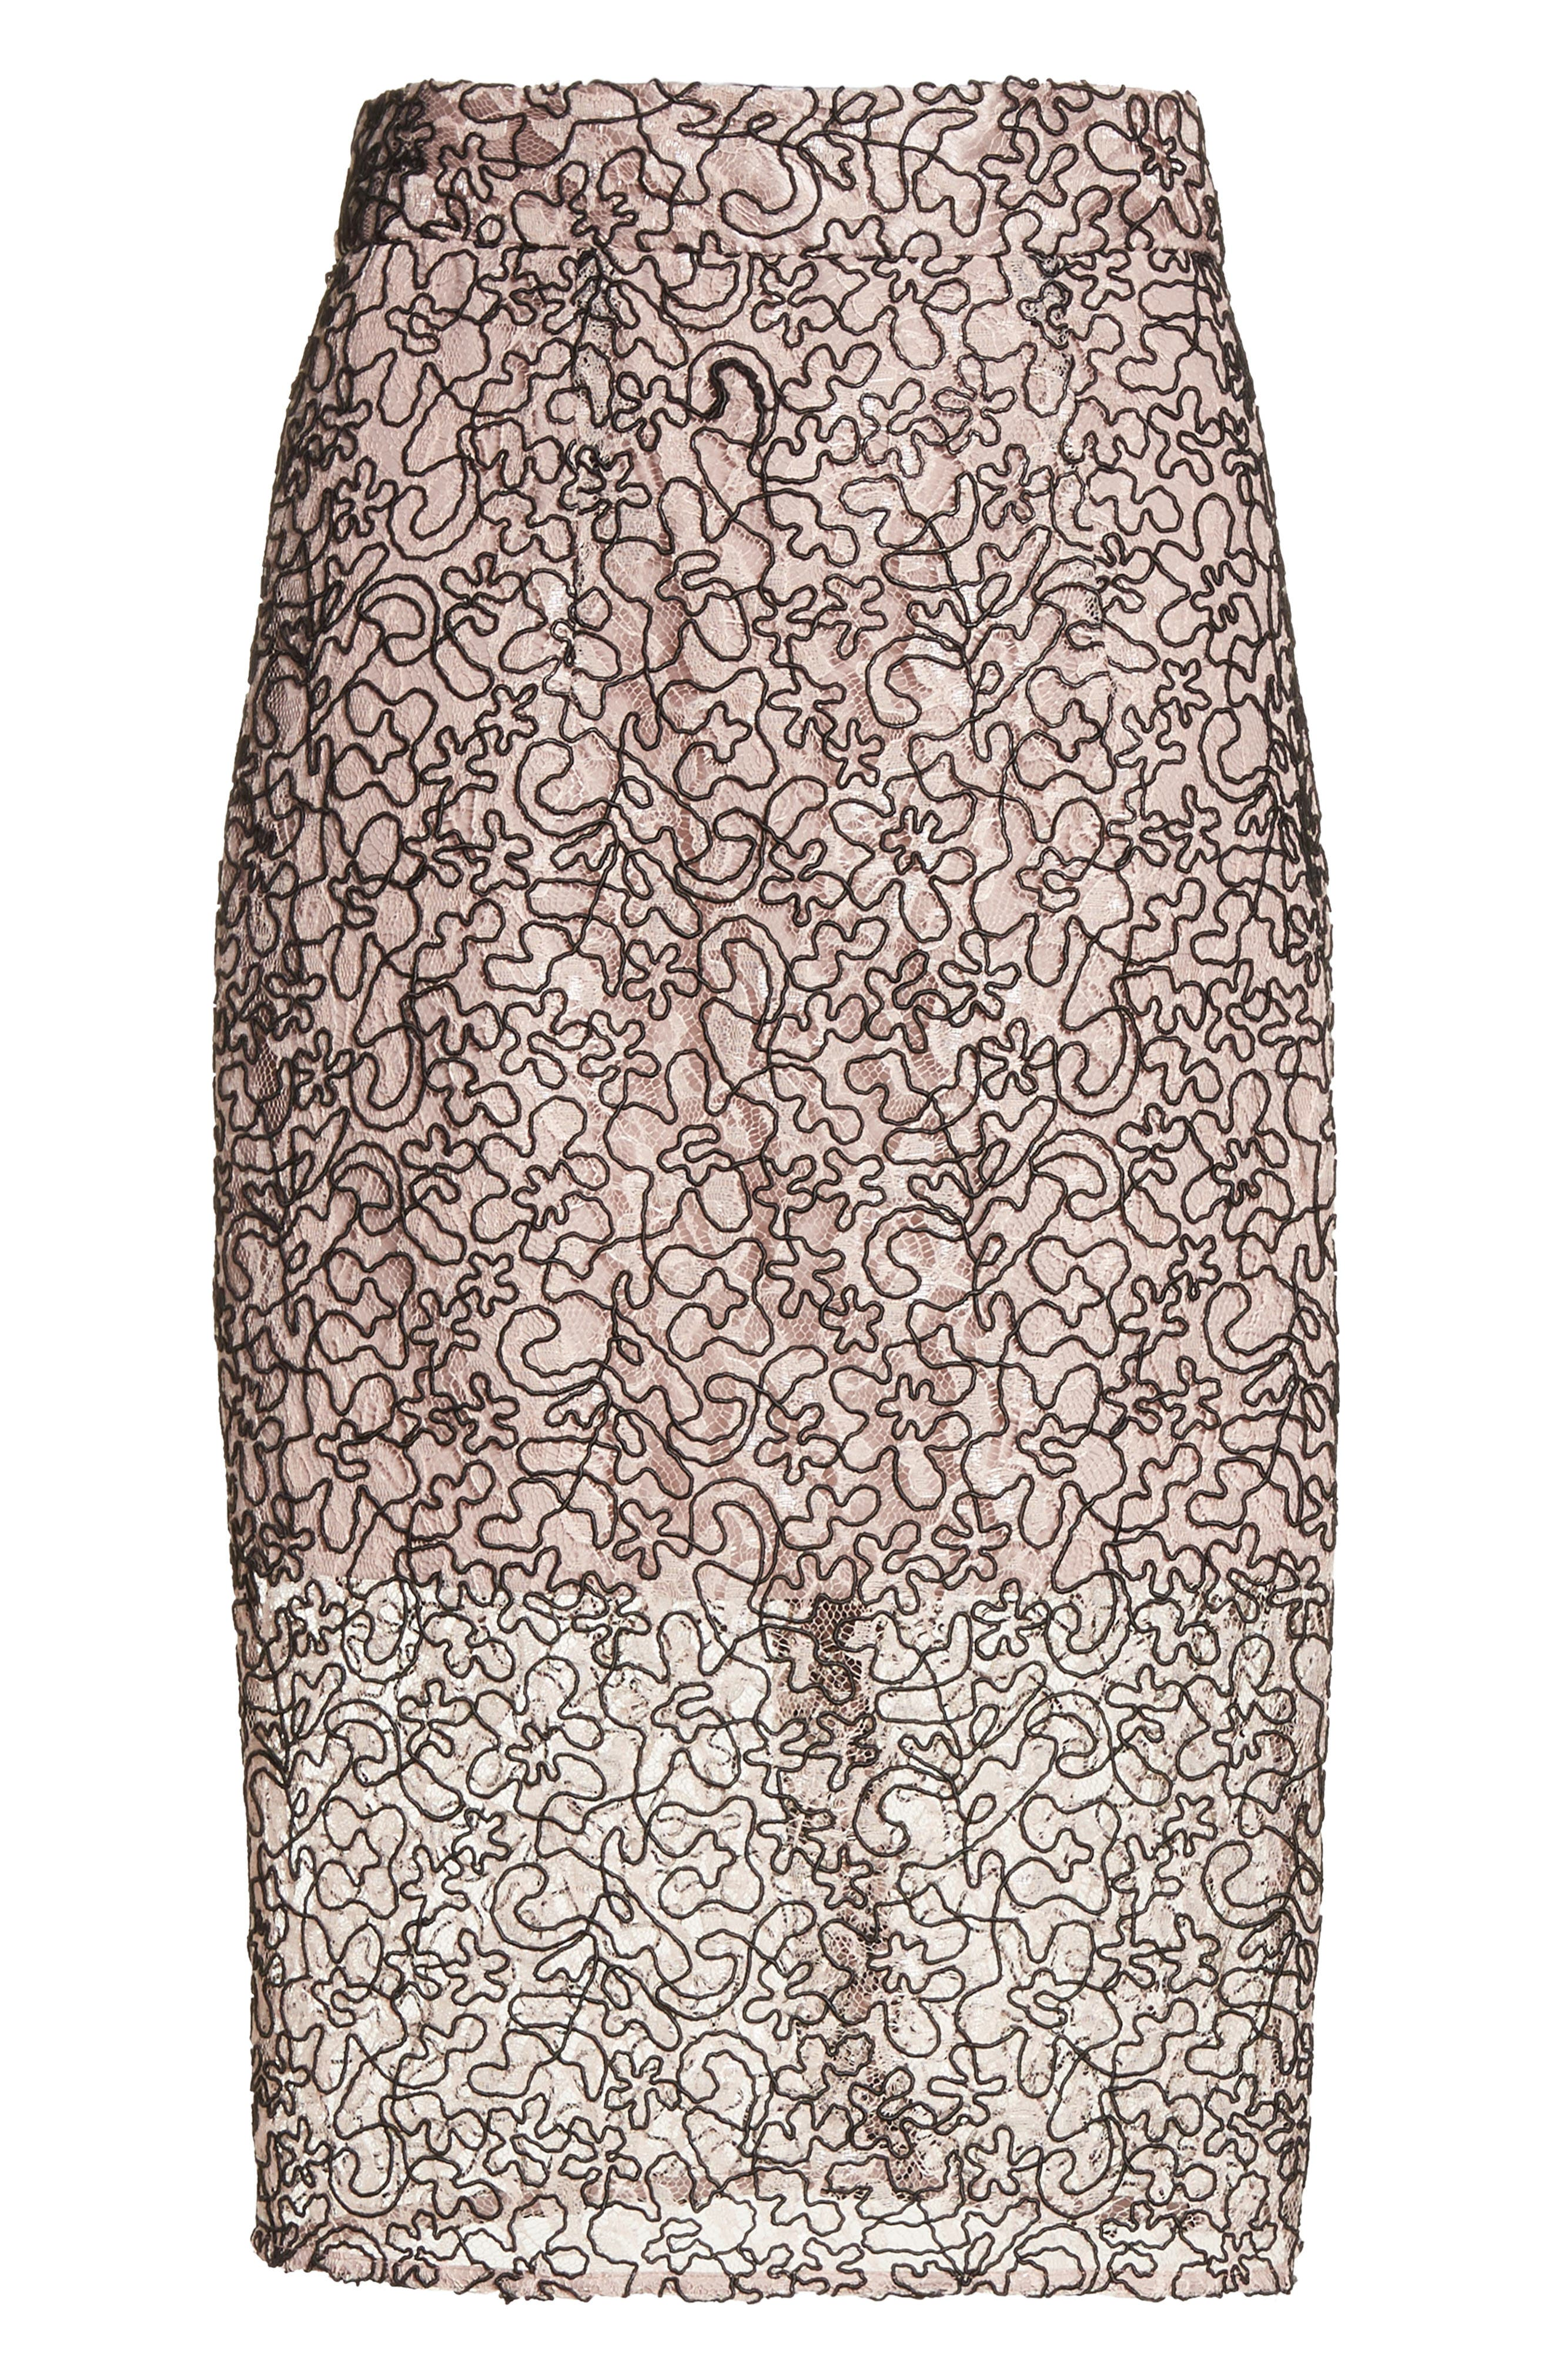 Corded Lace Pencil Skirt,                             Alternate thumbnail 6, color,                             653